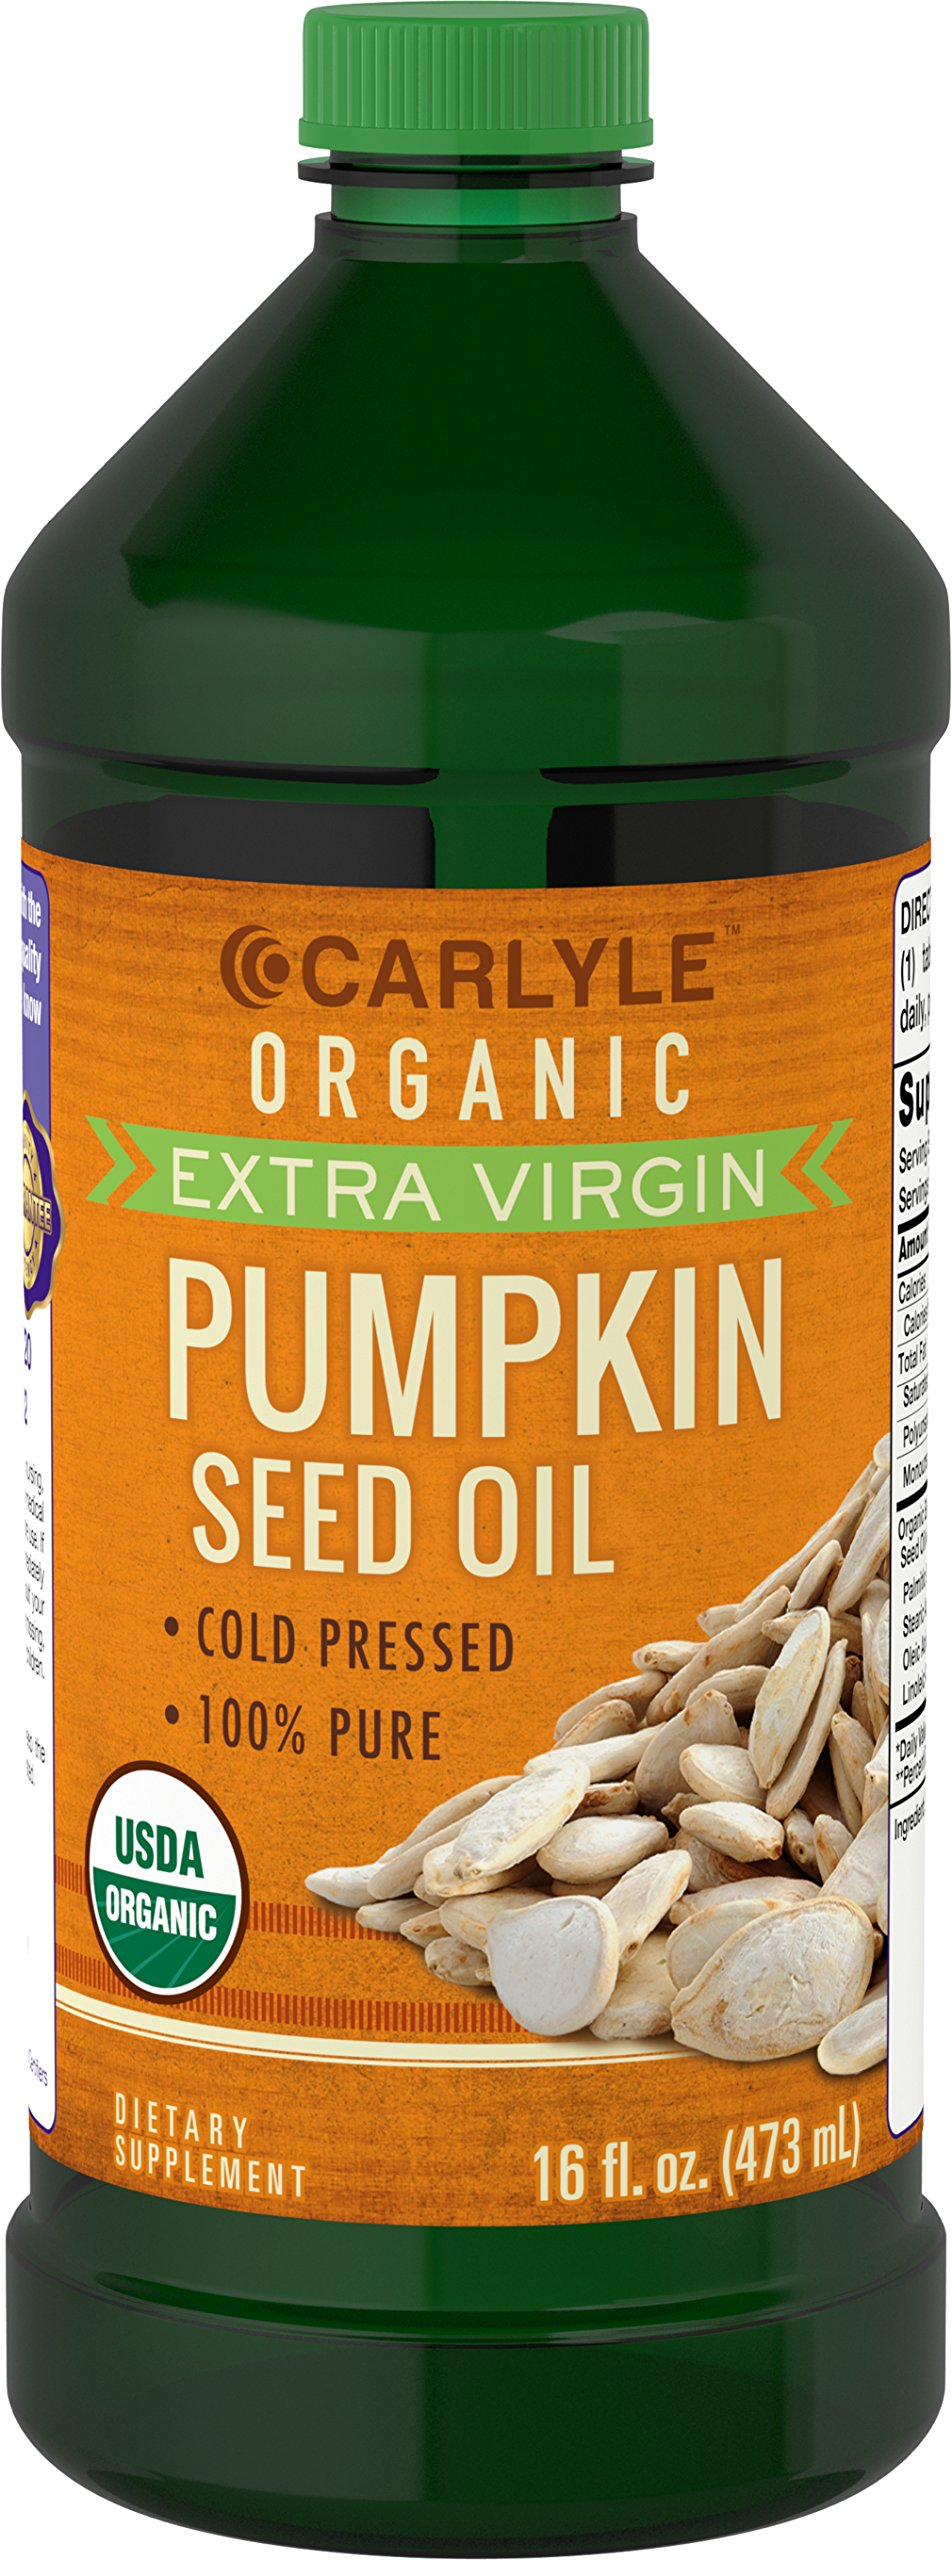 Carlyle Pumpkin Seed Oil 16oz Organic Cold Pressed